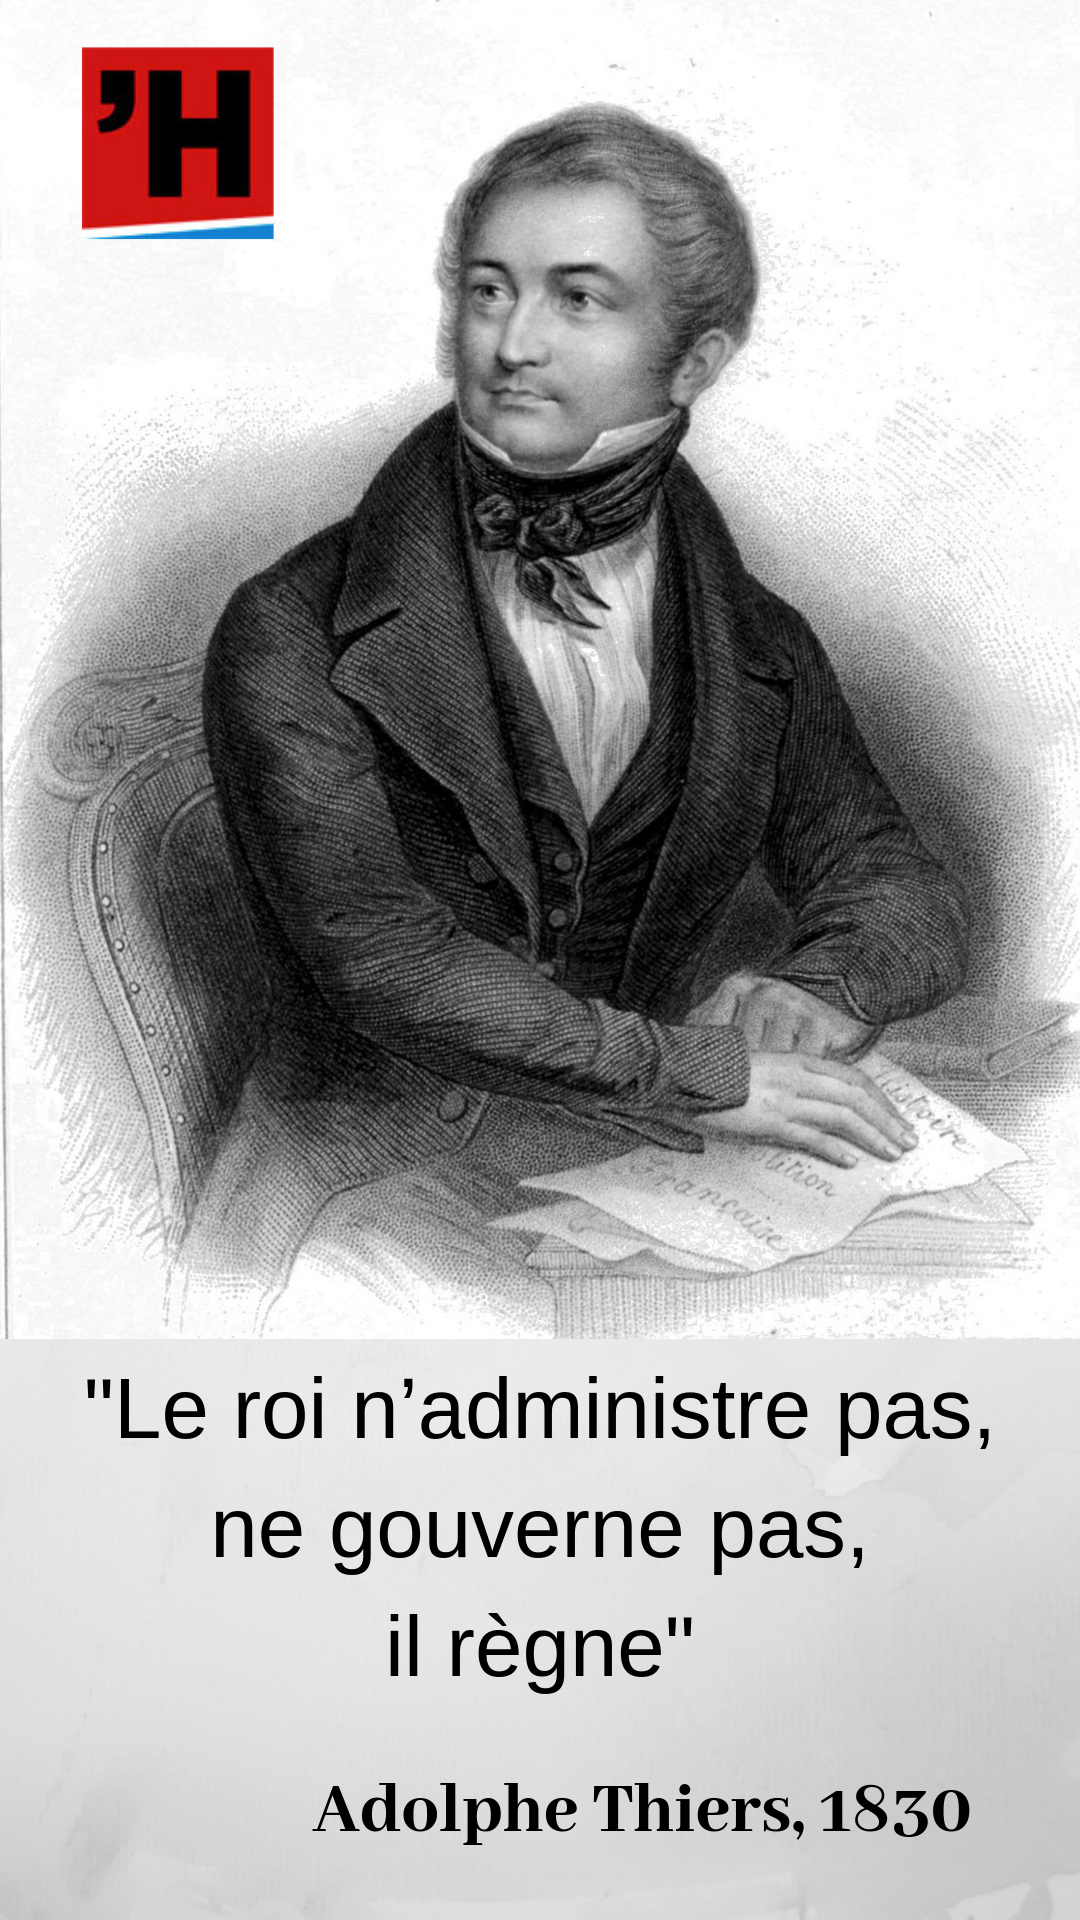 Epingle Sur Le Xixe Siecle En Citations